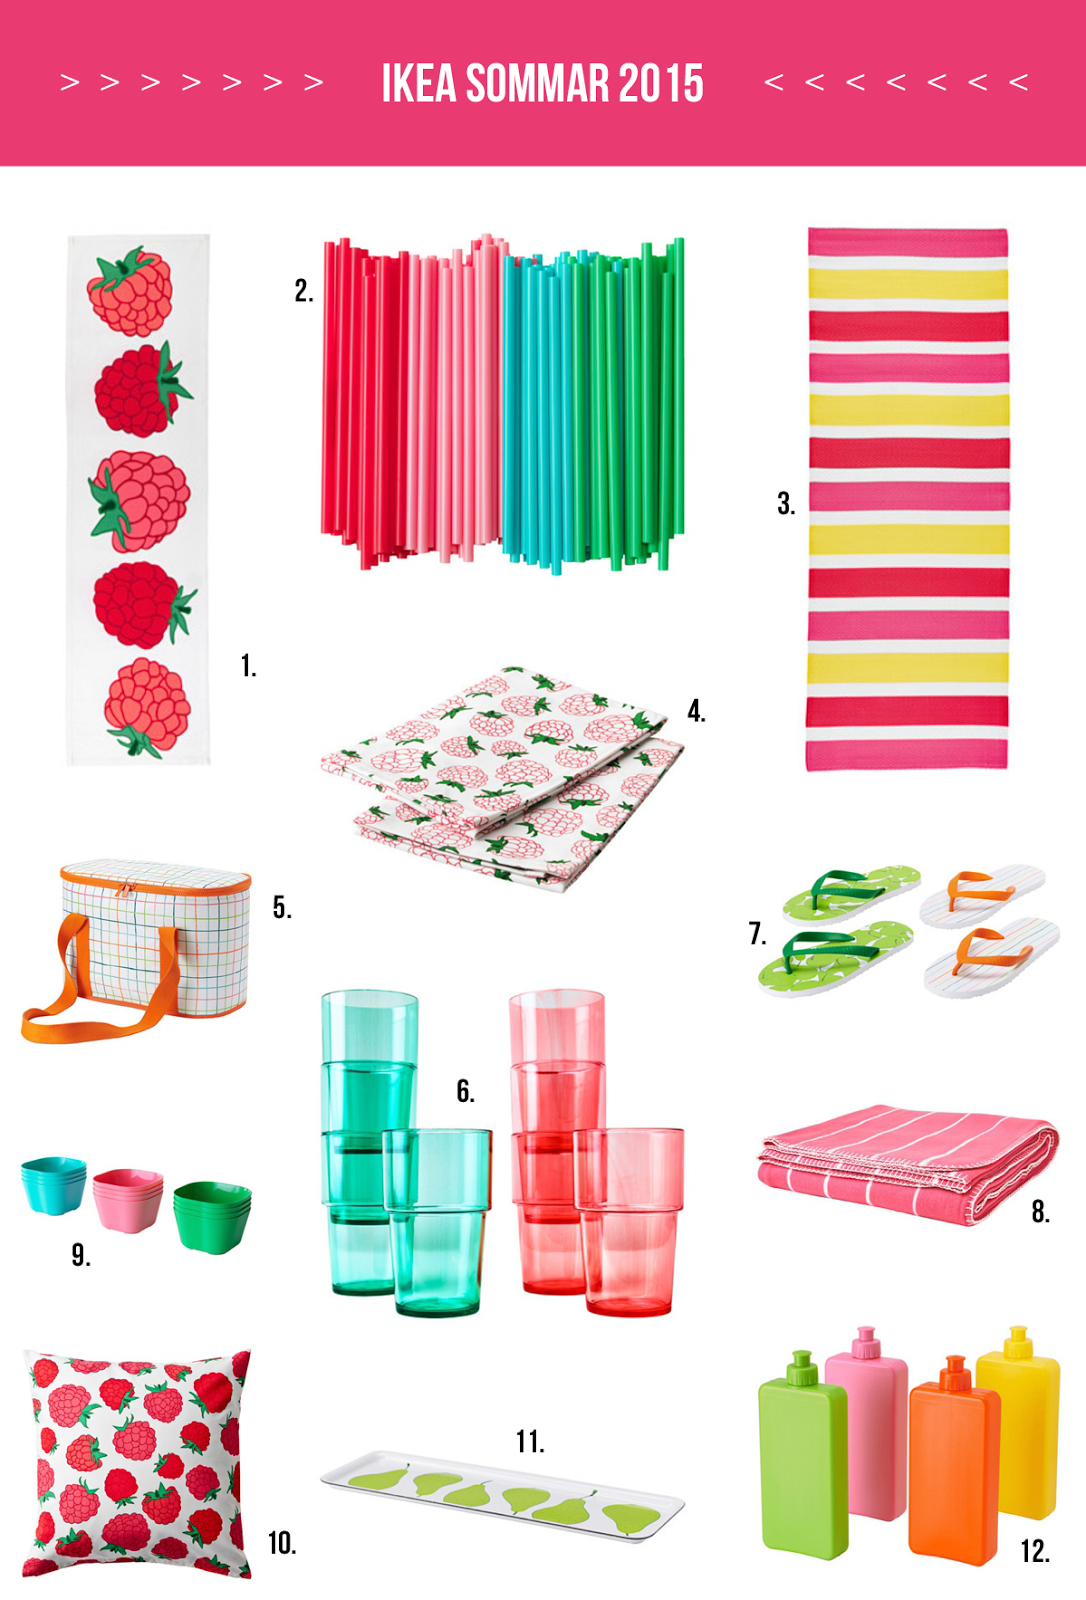 ikea-sommar-collection-bright-home-decor-summer.png